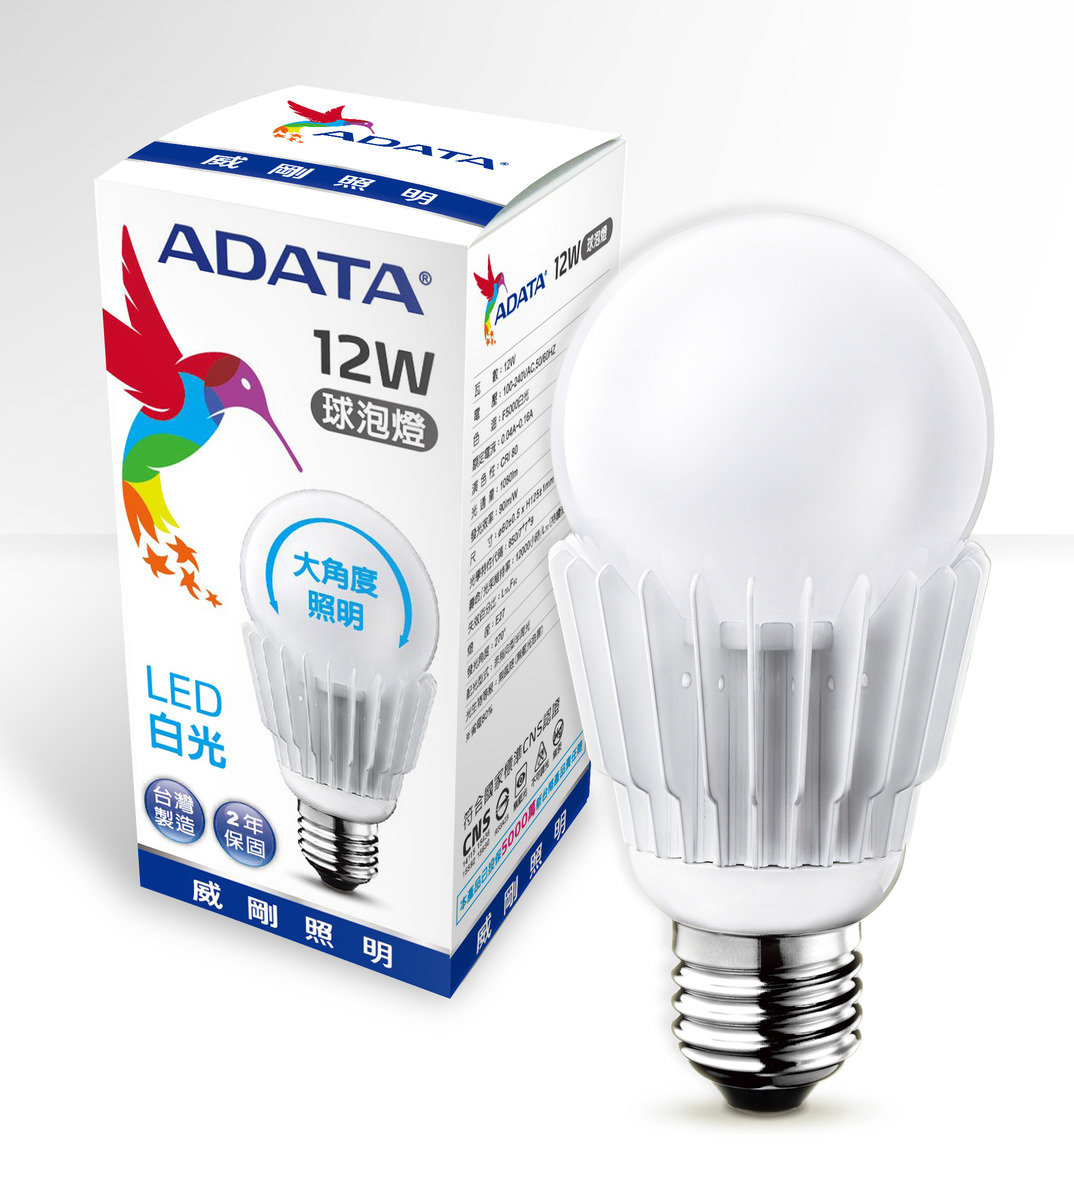 ADATA LED Bulb 12W 5000K Daylight